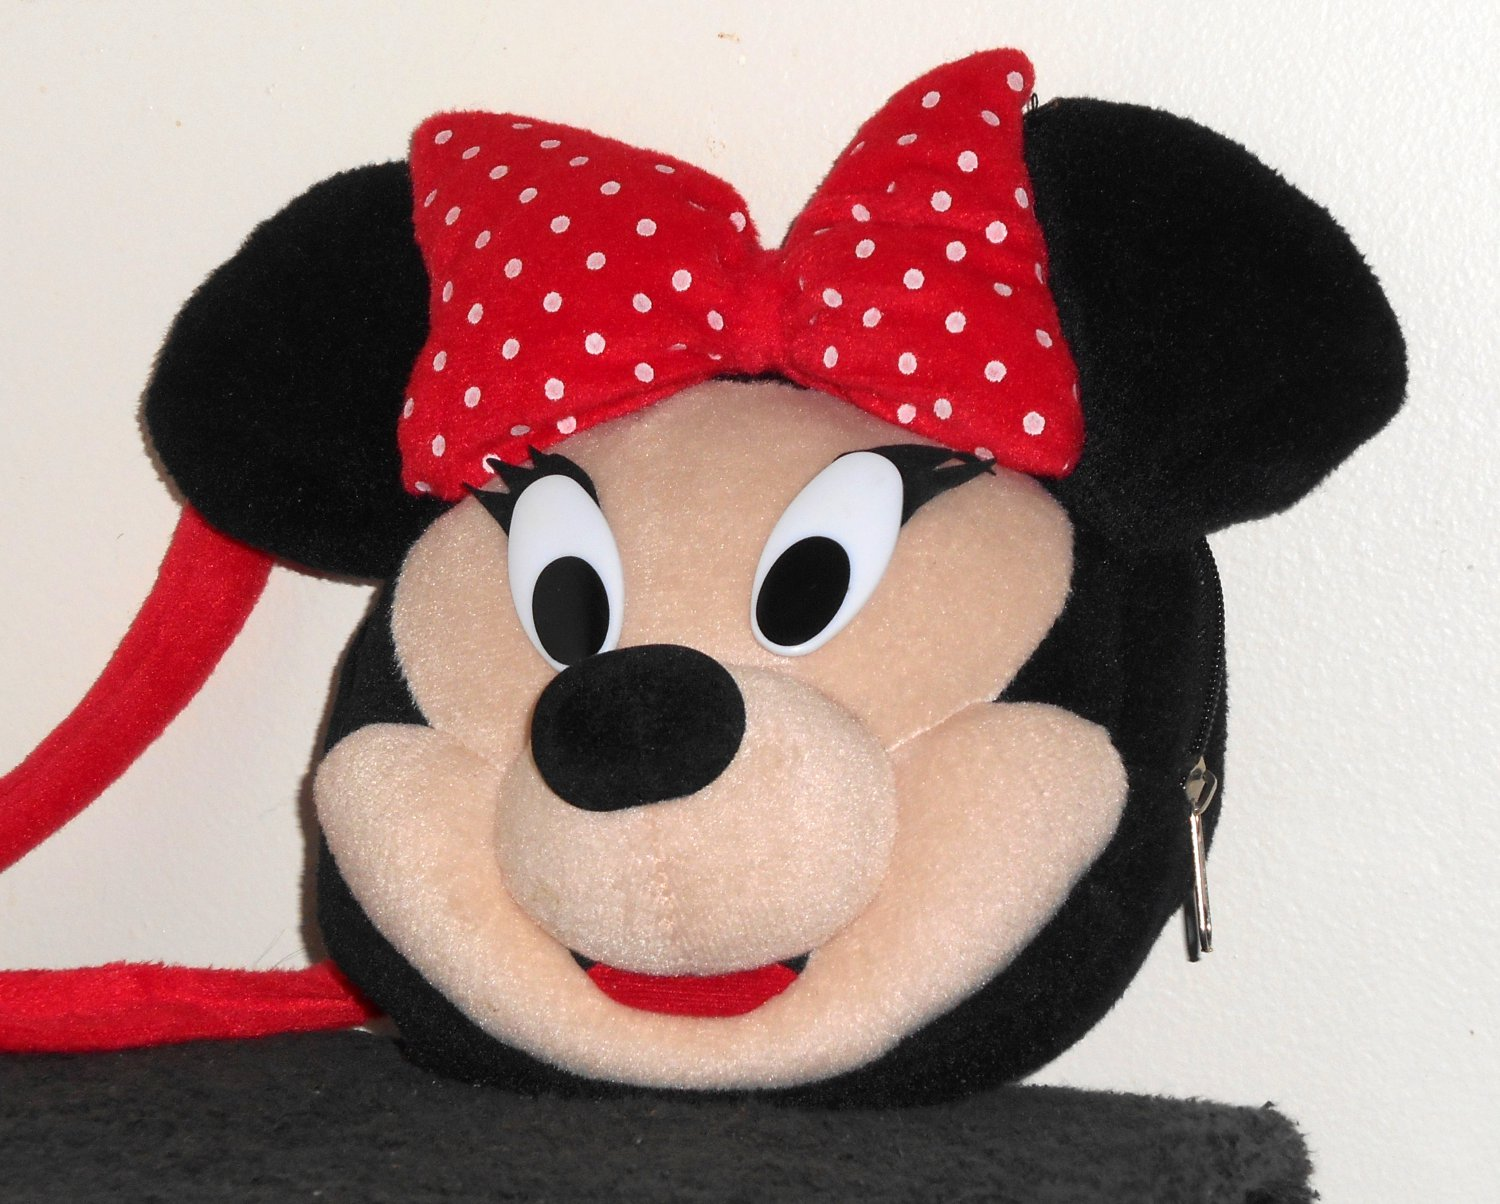 Minnie Mouse Child Plush Backpack & Purse Lot Back Pack Doll Bag Mickey's Stuff For Kids Disney